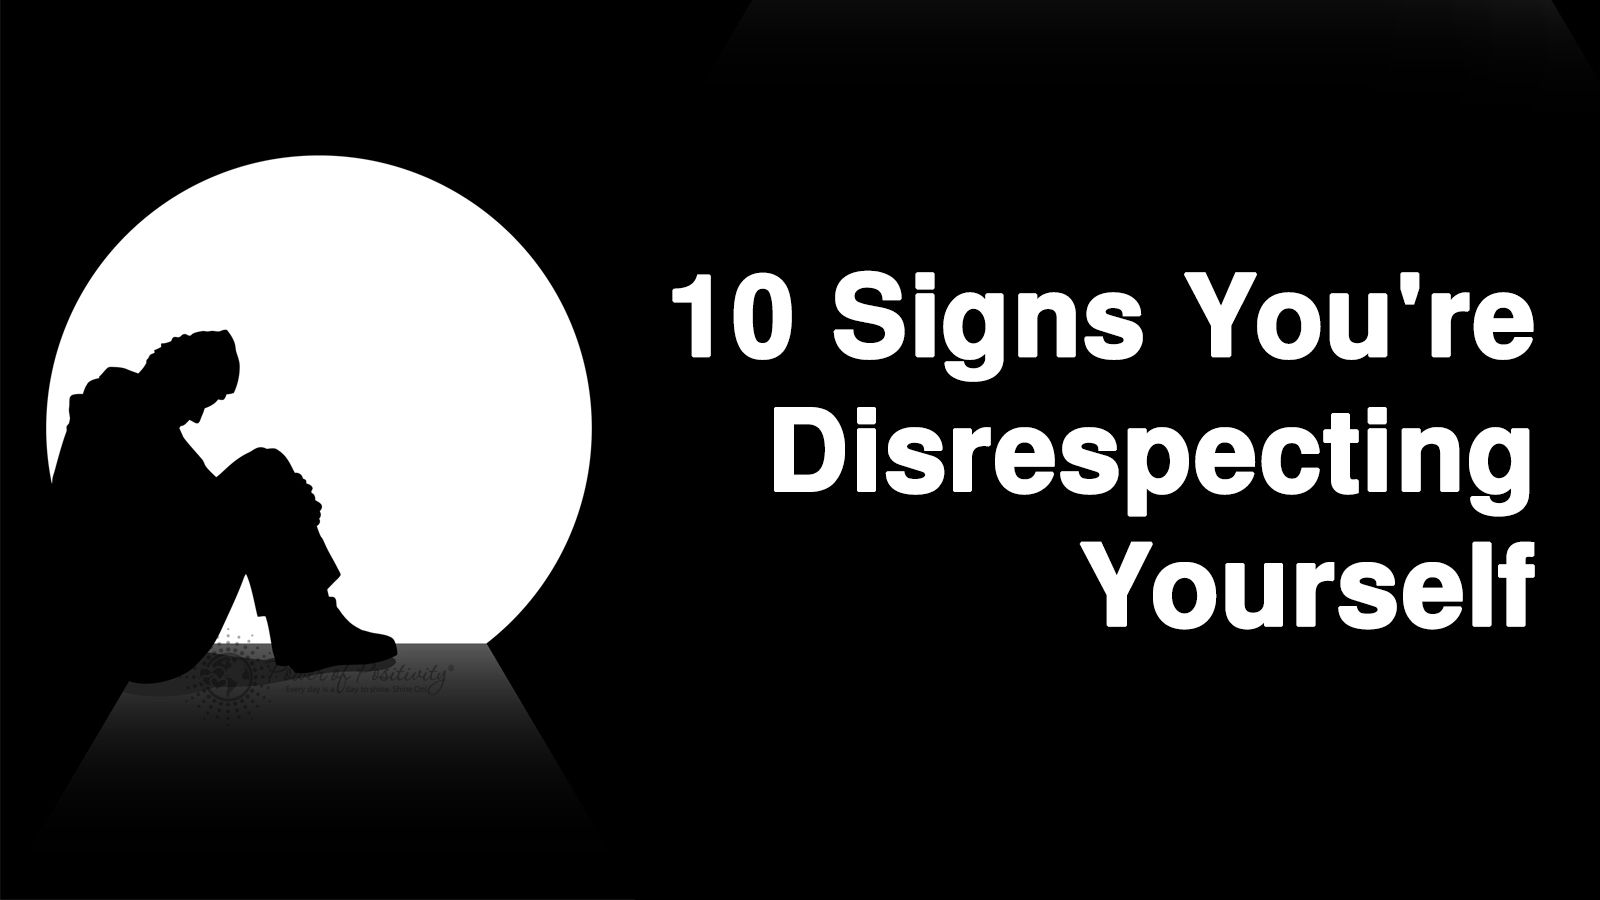 10 Signs You Re Disrespecting Yourself